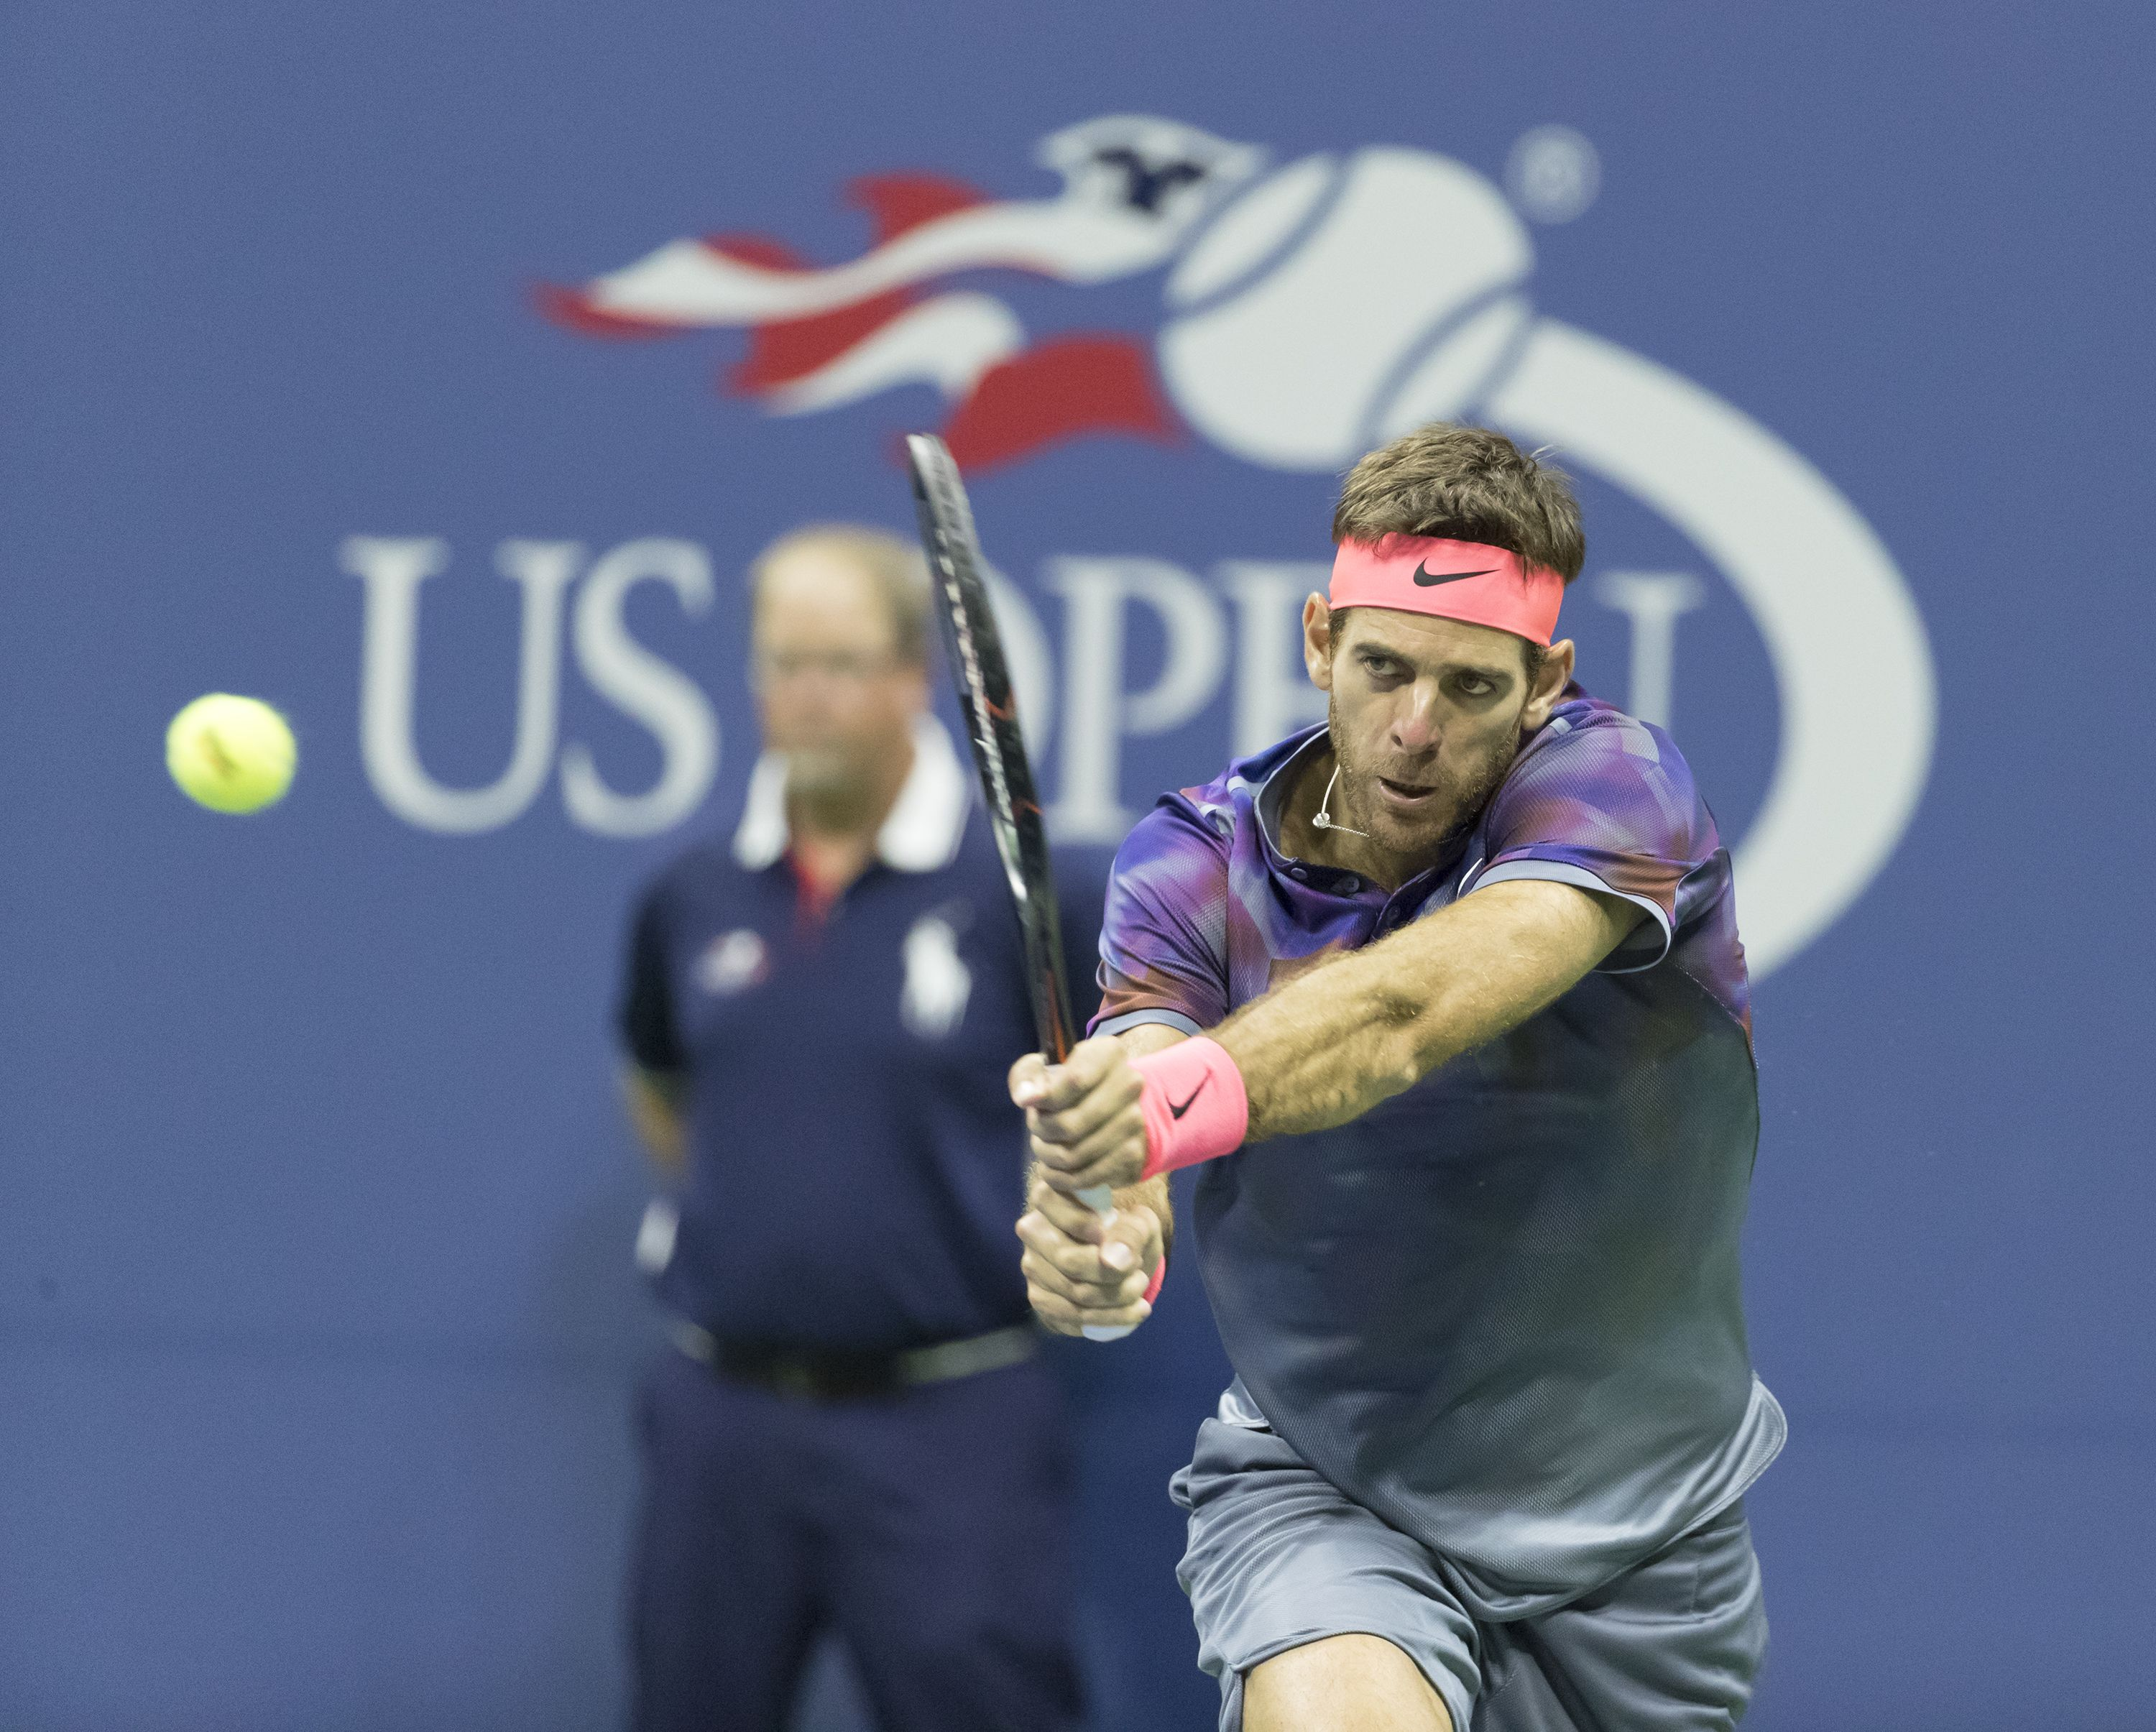 Argentinian Juan Martin' del Potro will face Rafael Nadal in the Semi-finals of the US Open. (Photo: Lev Radin)